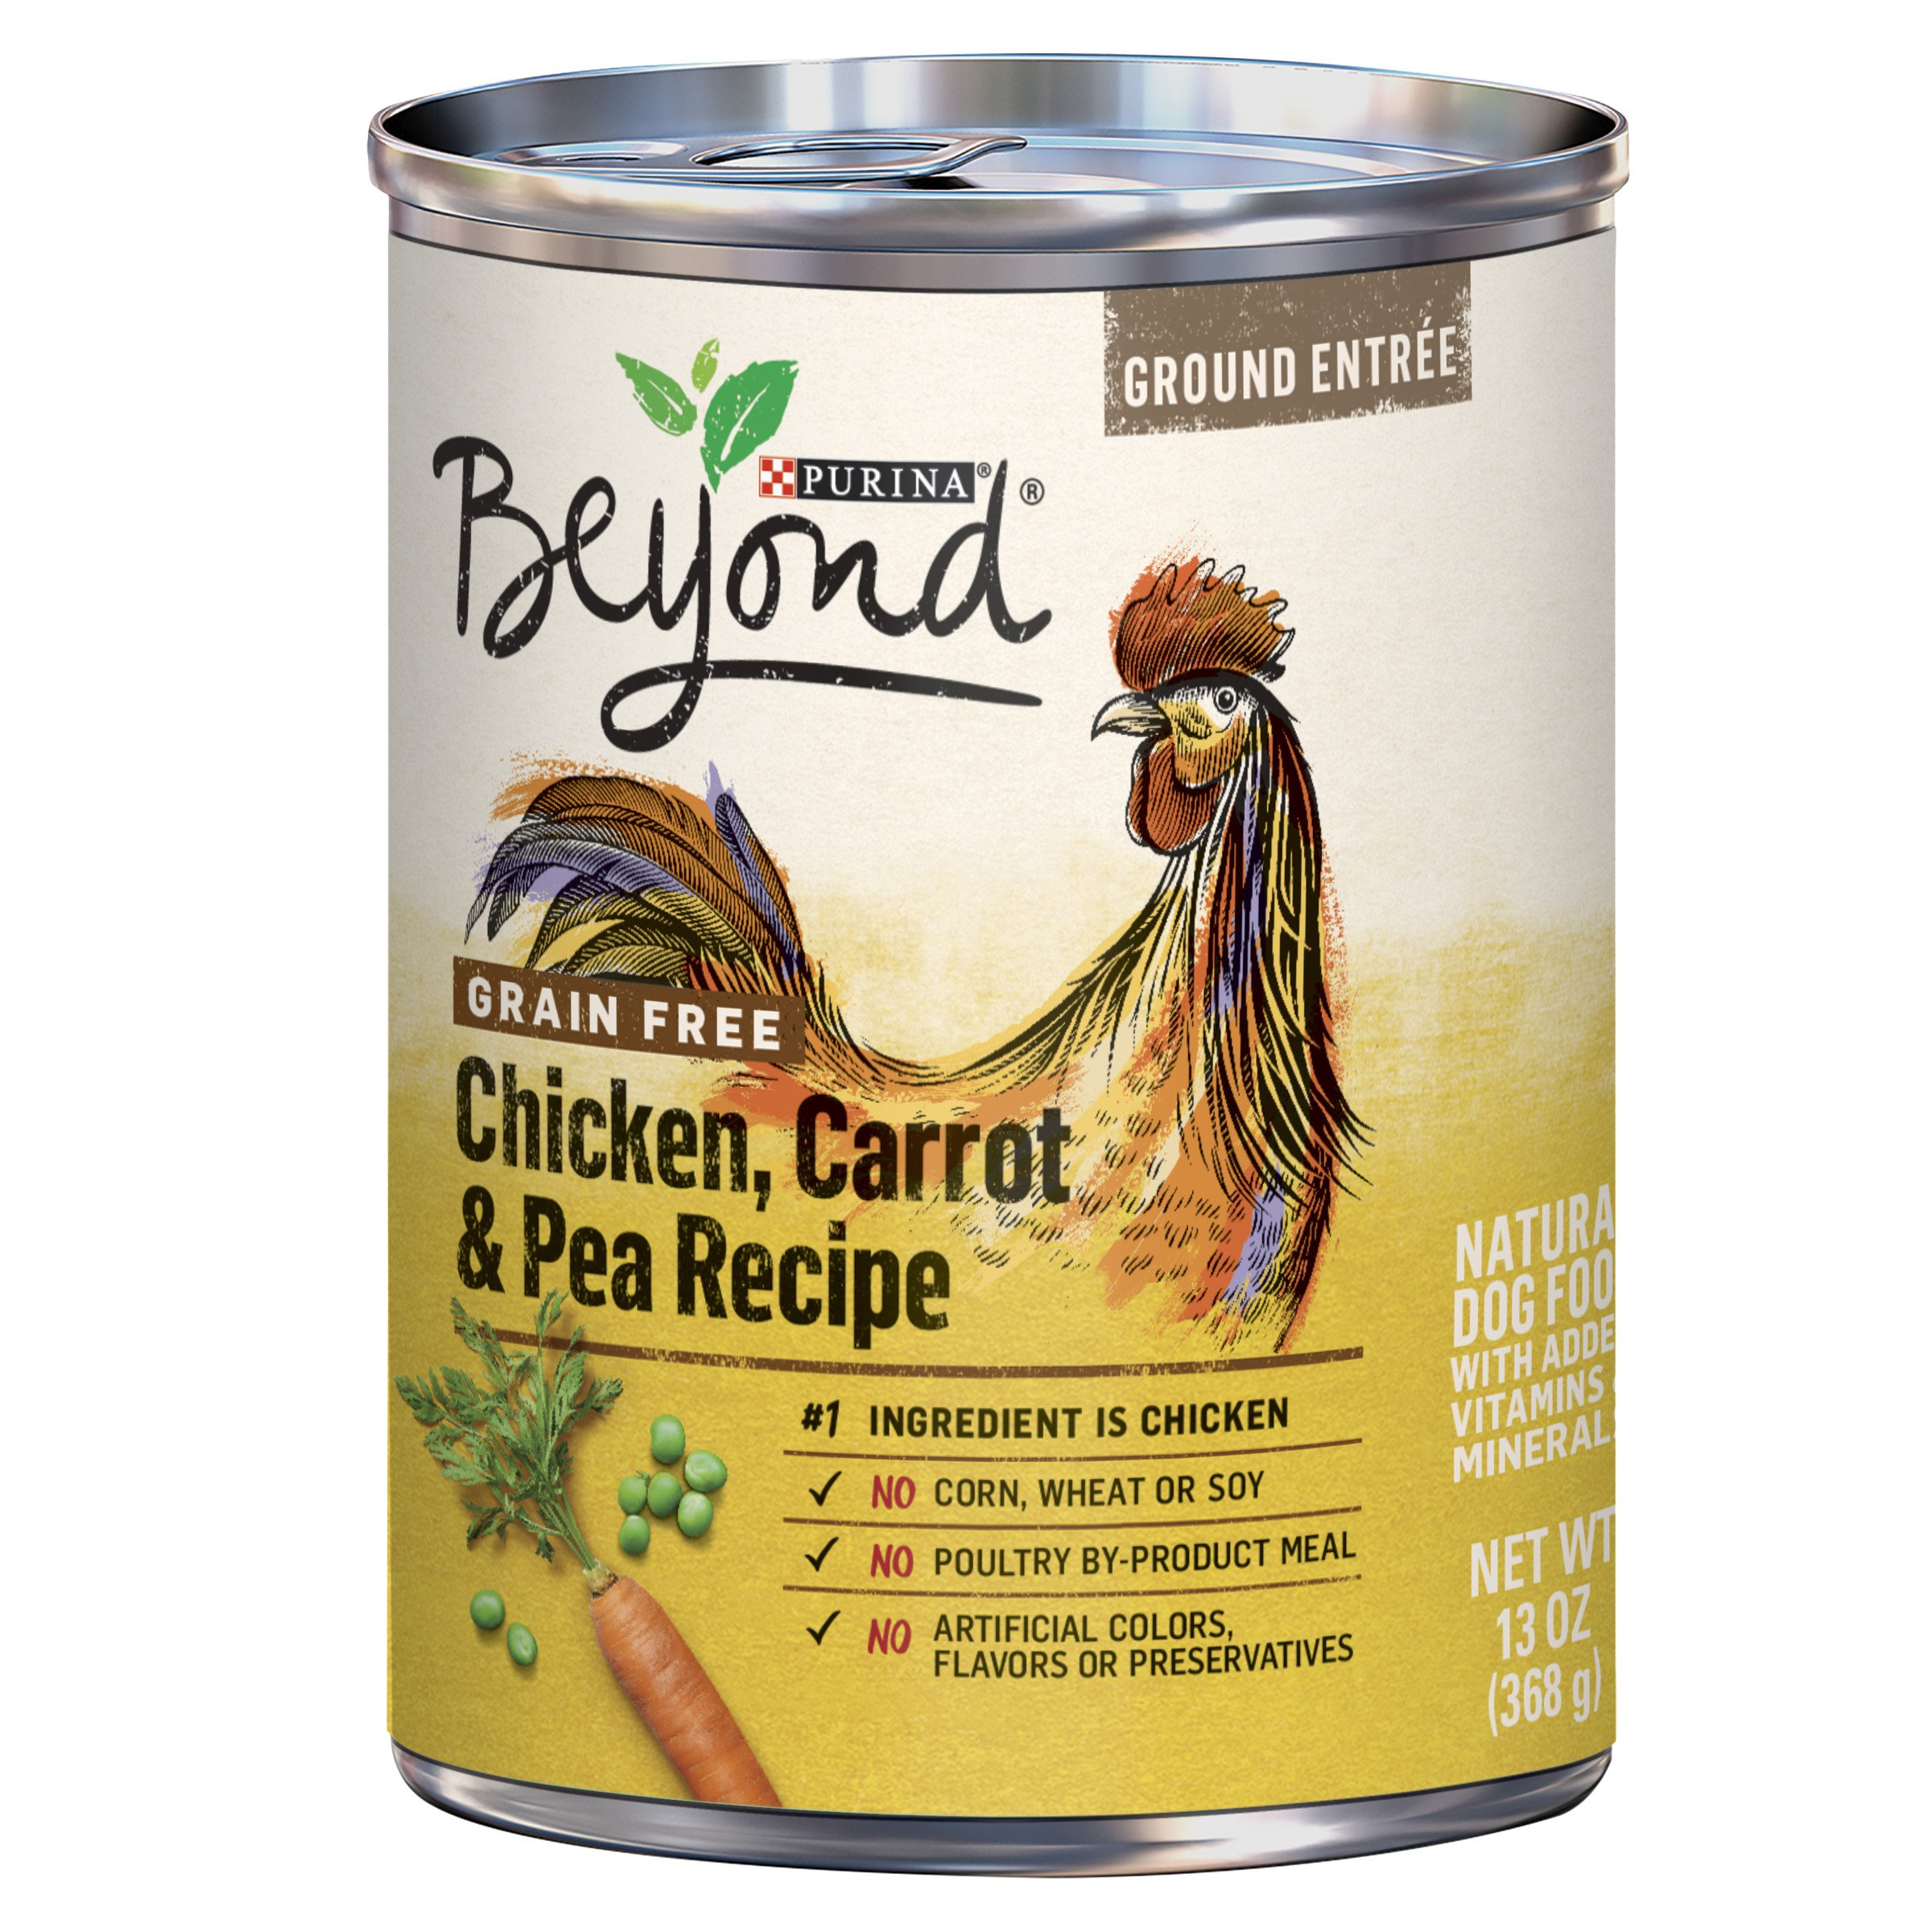 Purina Beyond Grain Free Chicken Carrot & Pea Recipe Ground Entree Adult Wet Dog Food - Twelve (12) 13 oz. Cans